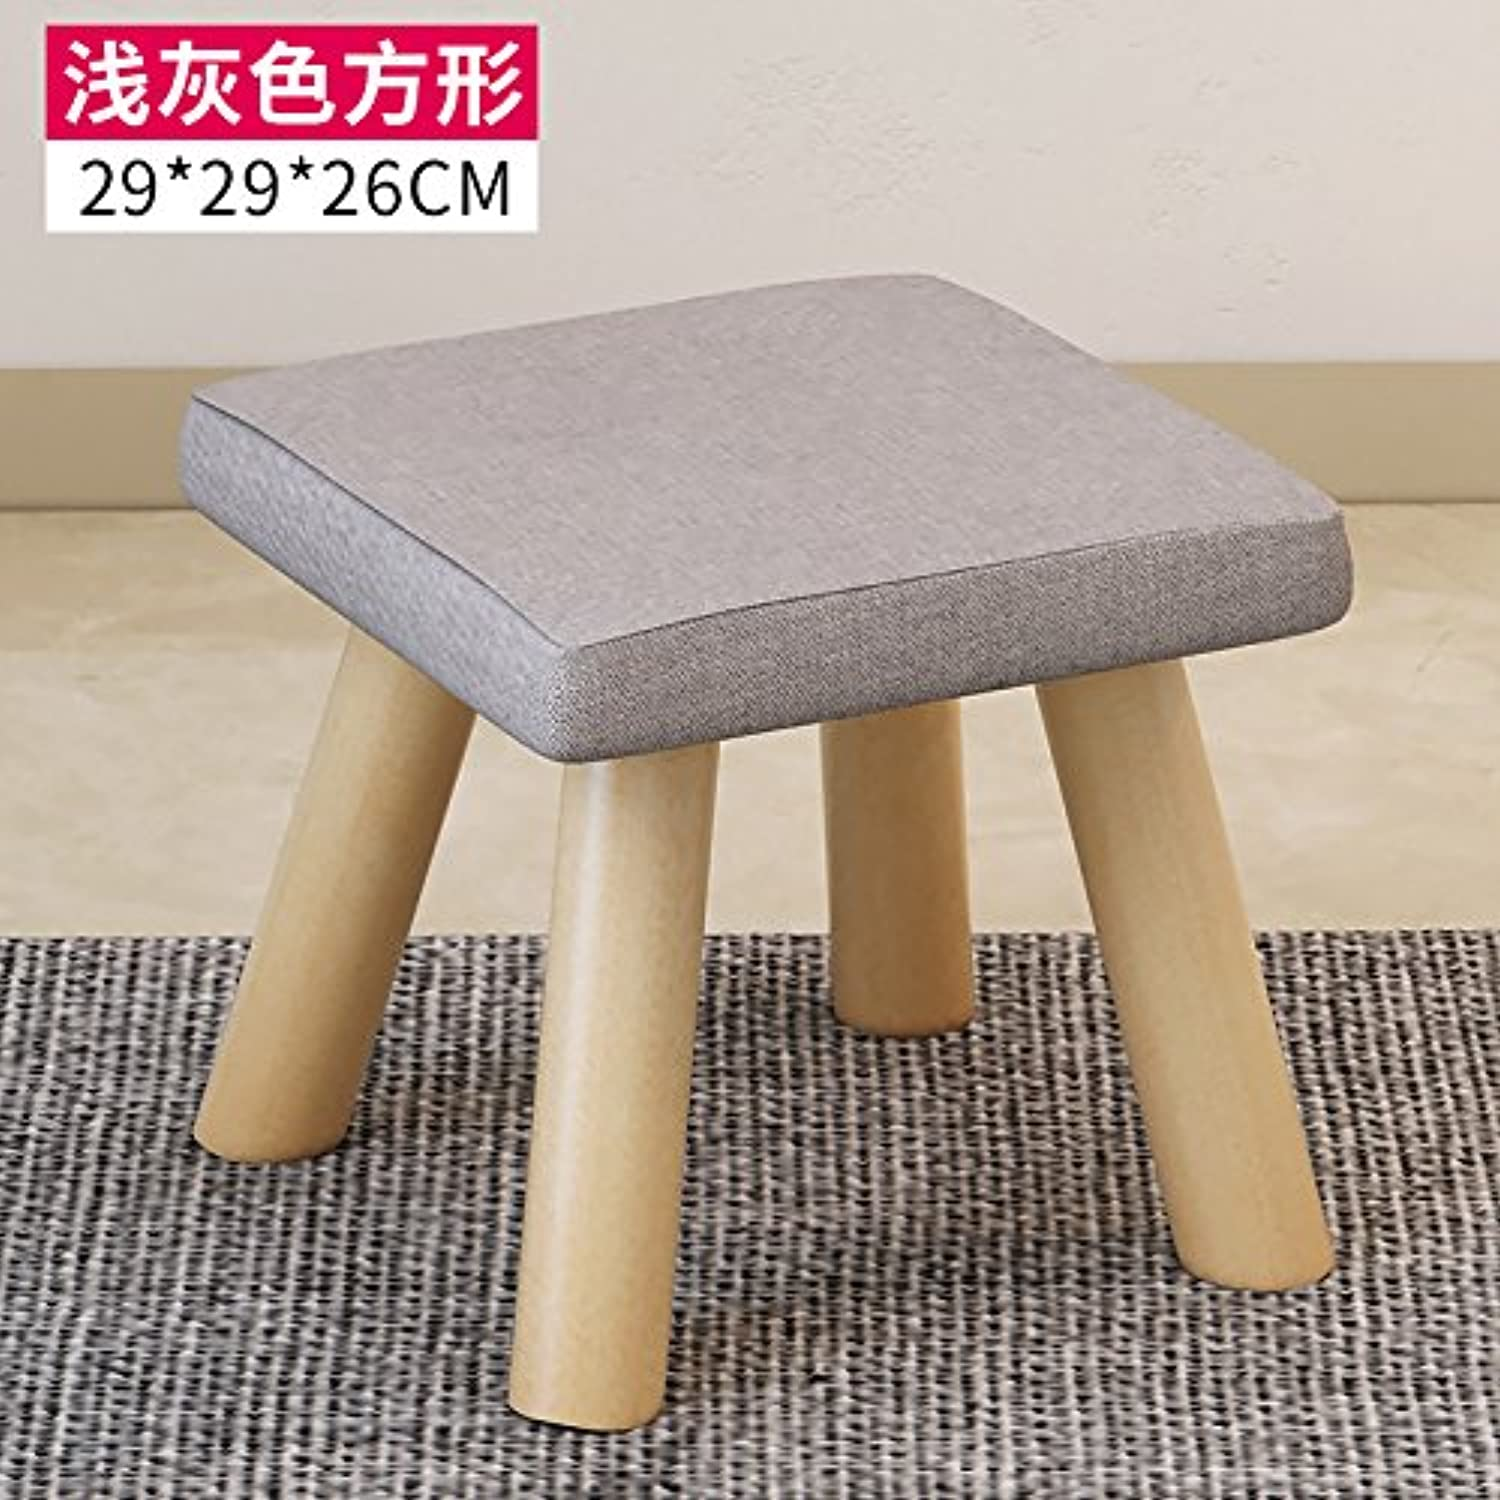 Dana Carrie Solid wood for the implementation of the low stools shoes cloth shoes sofa chair is stylish and creative, Square